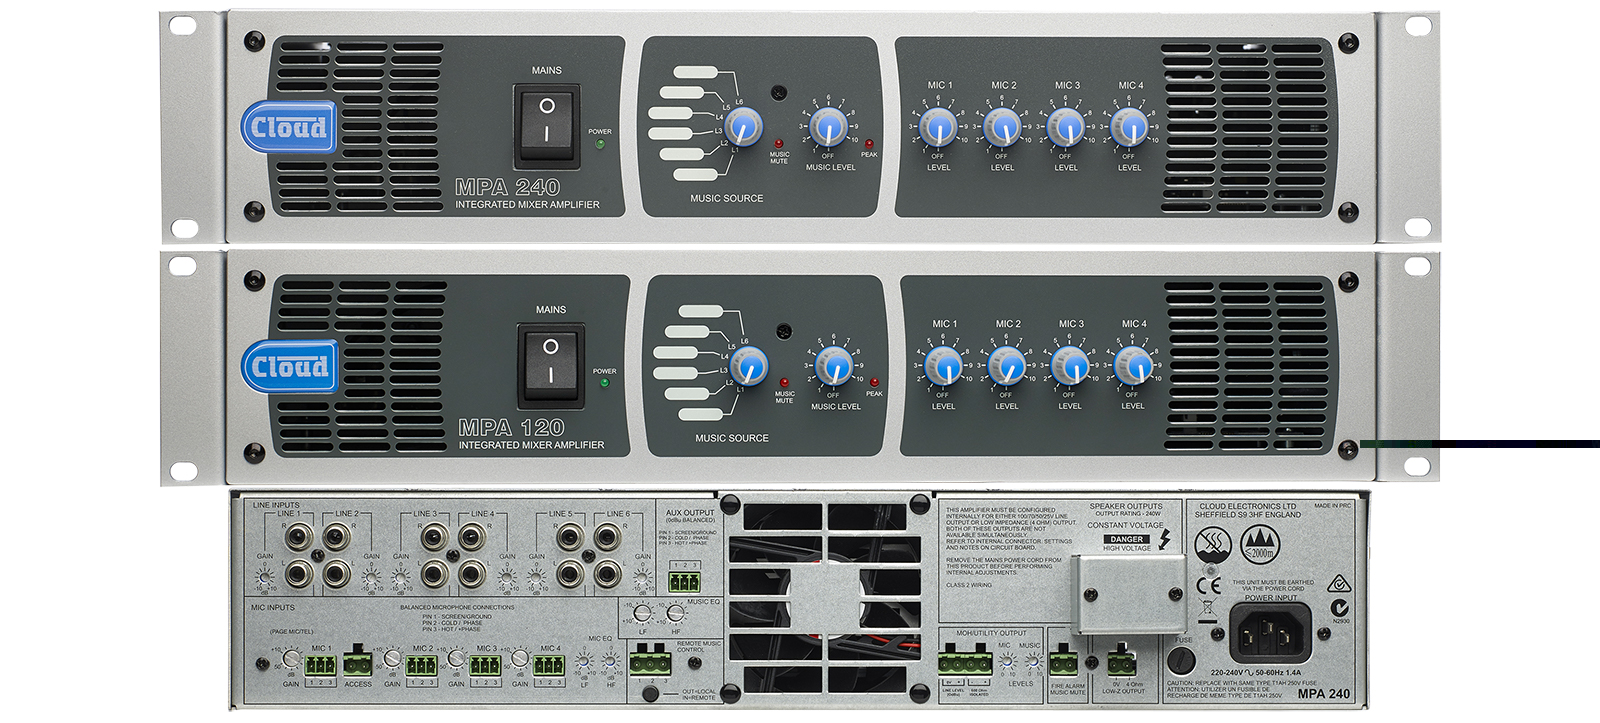 Cloud MPA-Series Mixer Amplifiers - Refreshed and Now Shipping